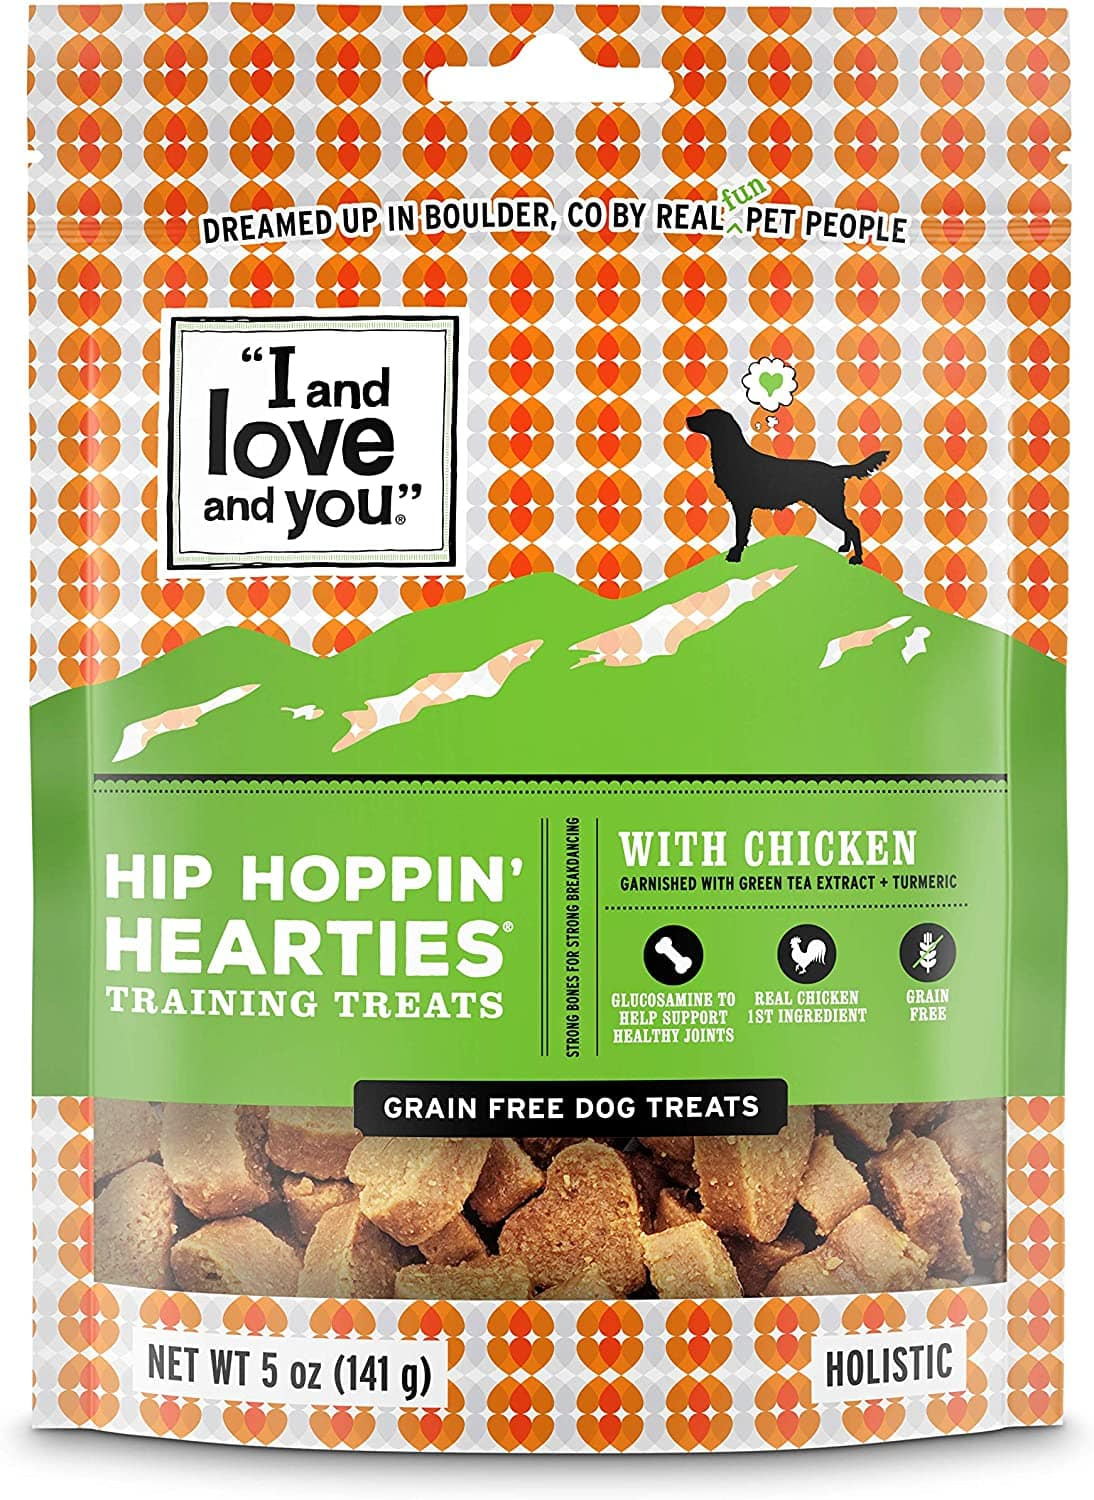 """5-Oz """"I and love and you"""" Hearties Hip & Brain Support Dog Treats $3.40 w/ S&S & More + Free Shipping w/ Amazon Prime or Orders $25+"""